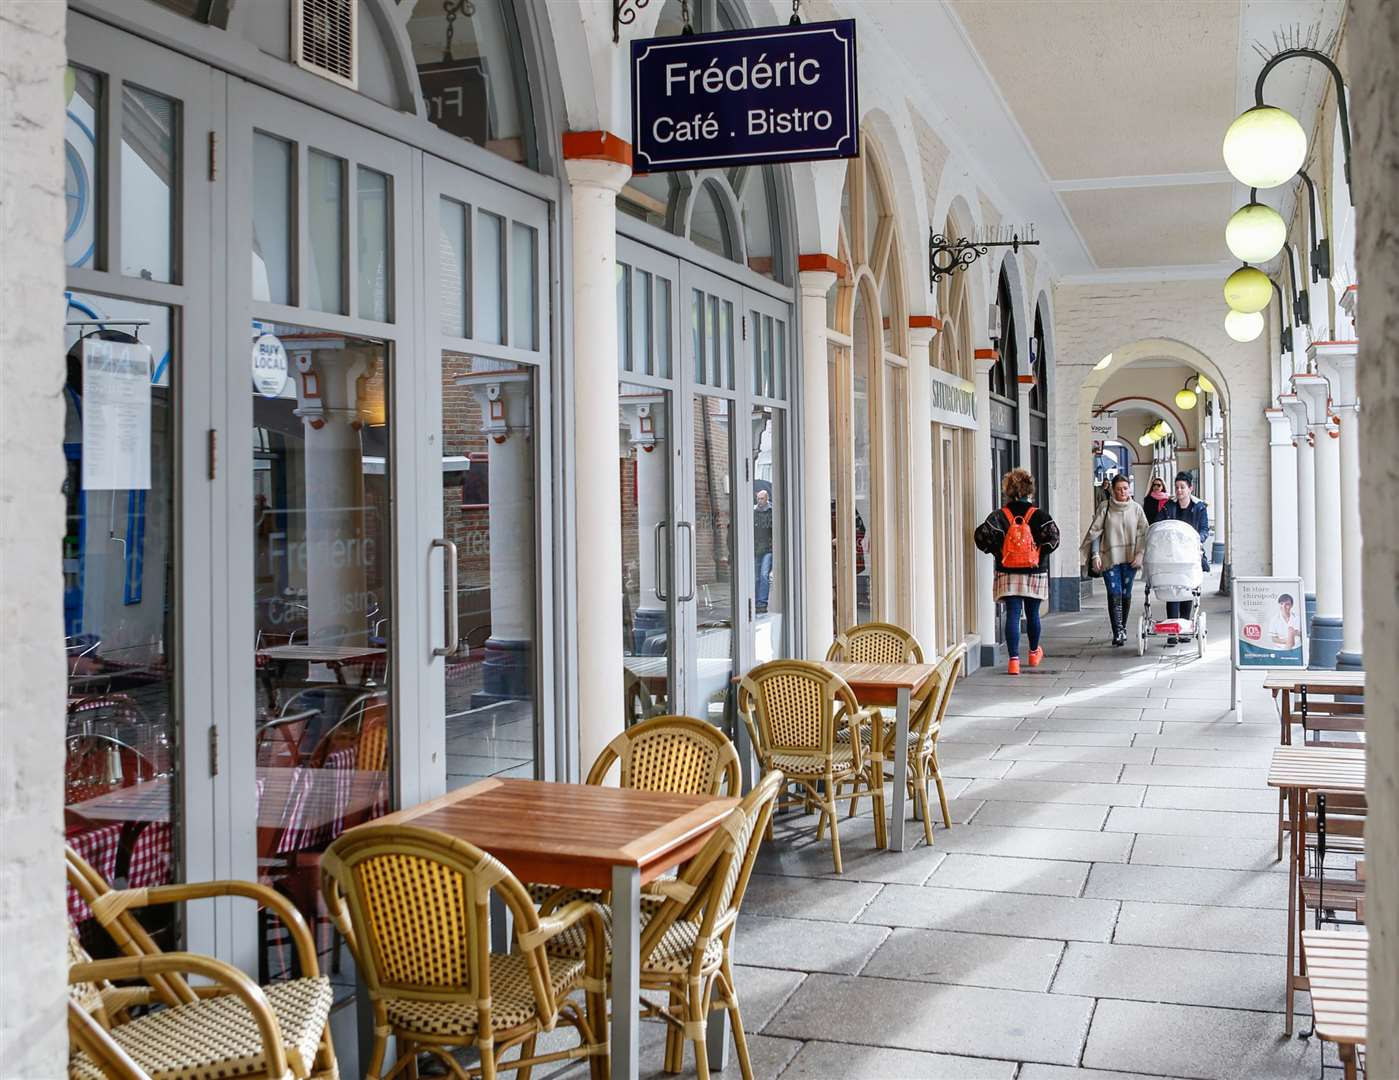 Frederic Bistro in Market Buildings, Maidstone